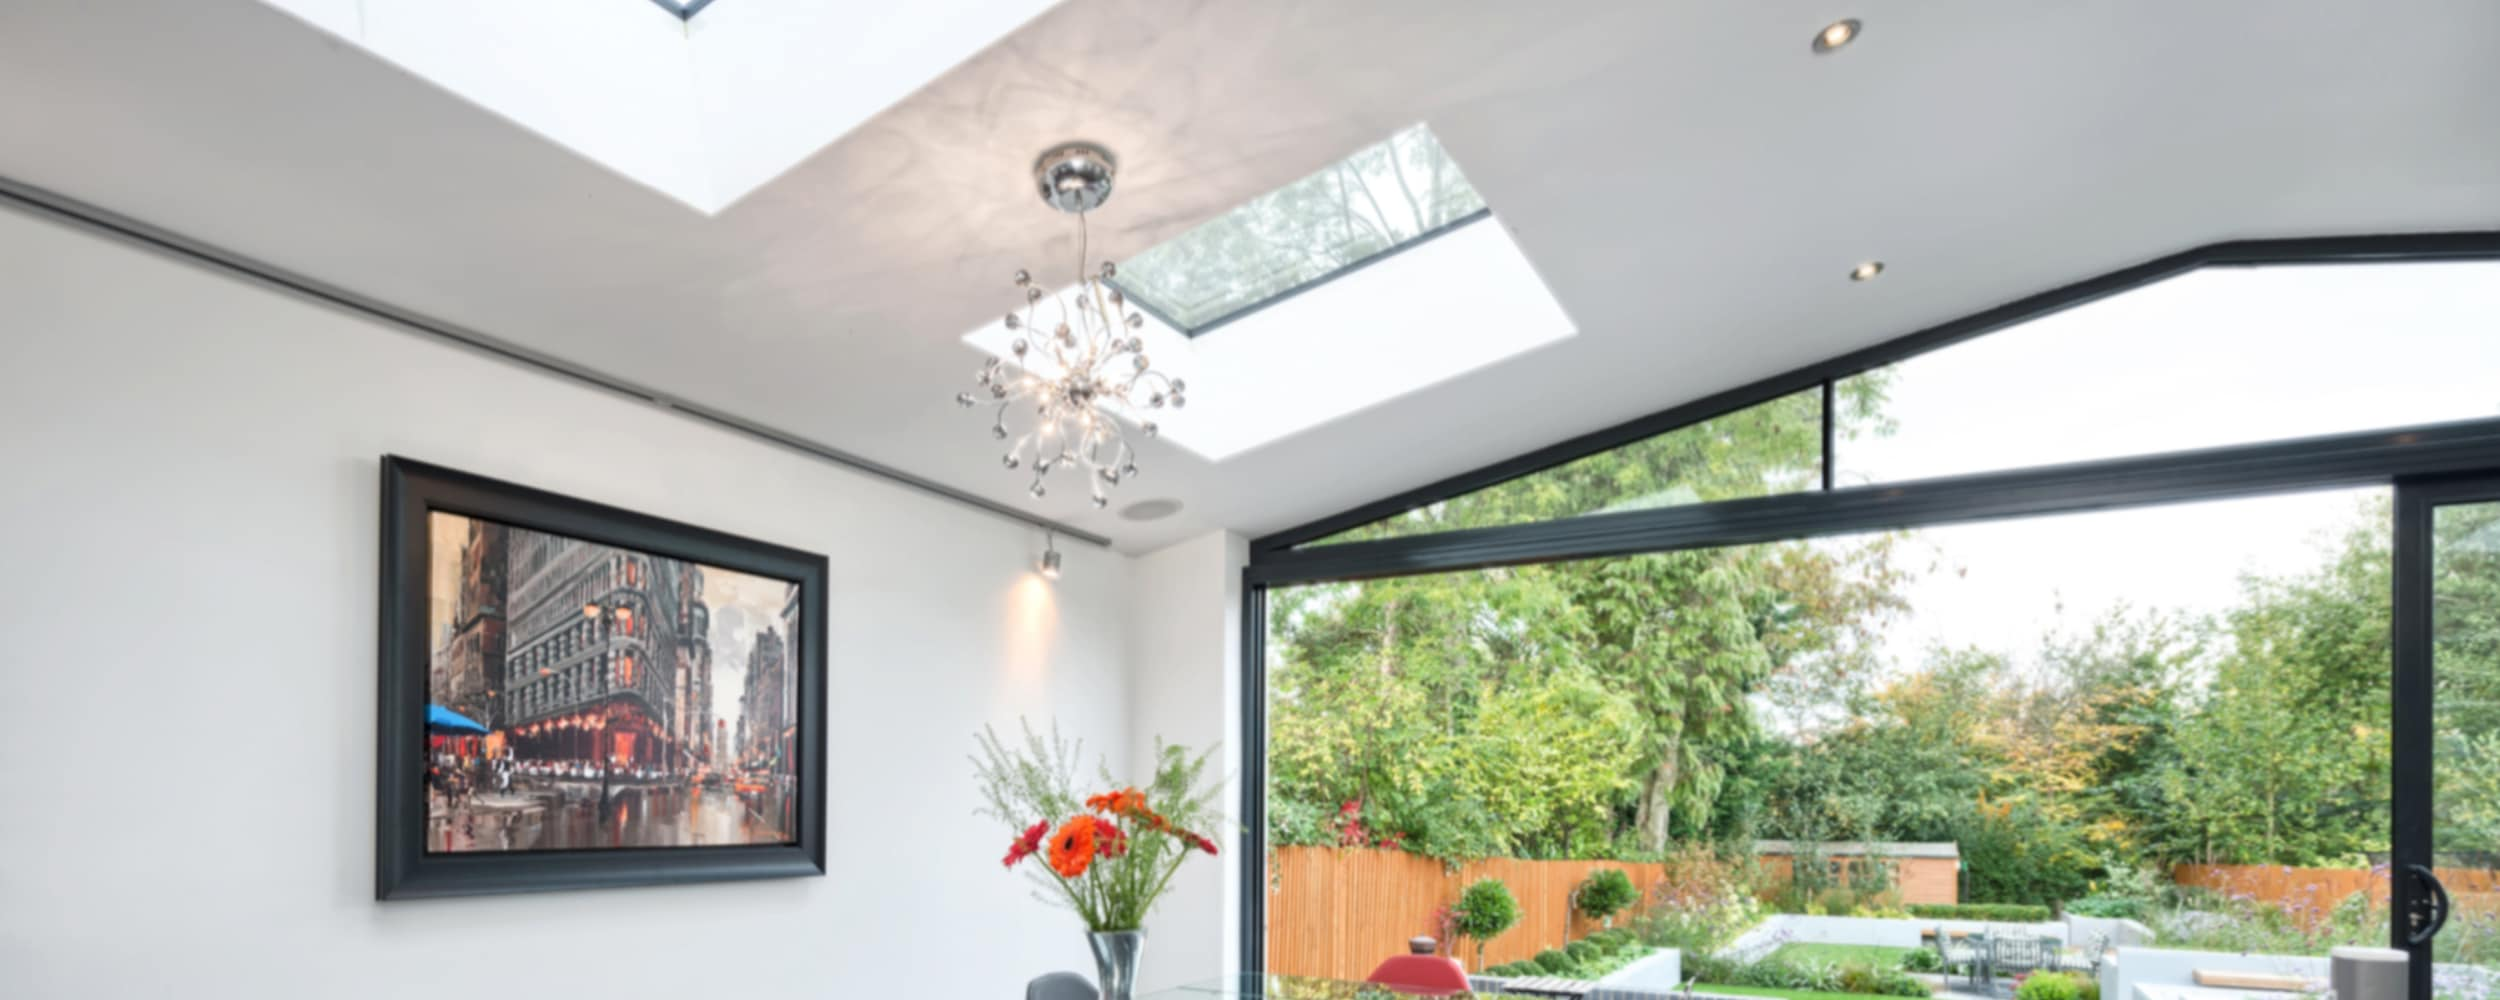 Room showing different installations from IDSystems including roof-lights, gable end windows and theEDGE2.0 sliding door